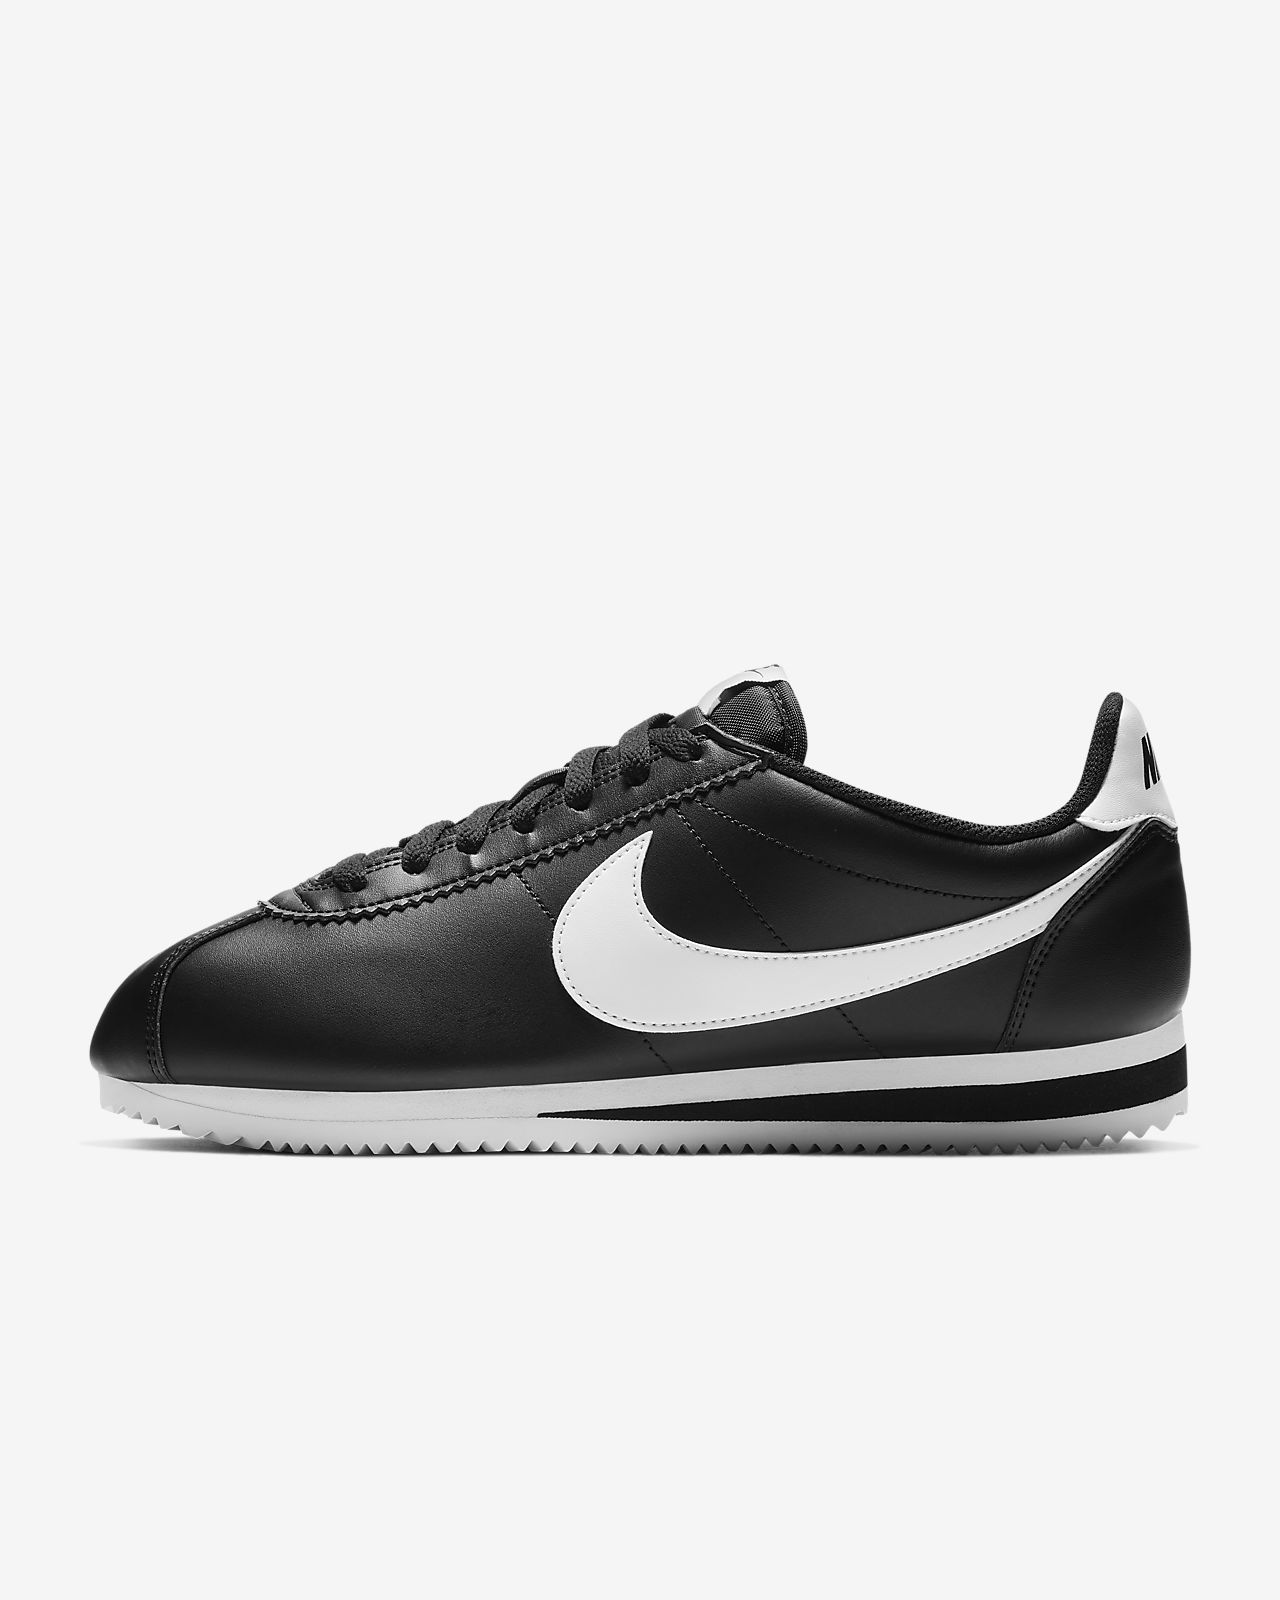 free shipping ae6c1 a8c6b ... Chaussure Nike Classic Cortez pour Femme